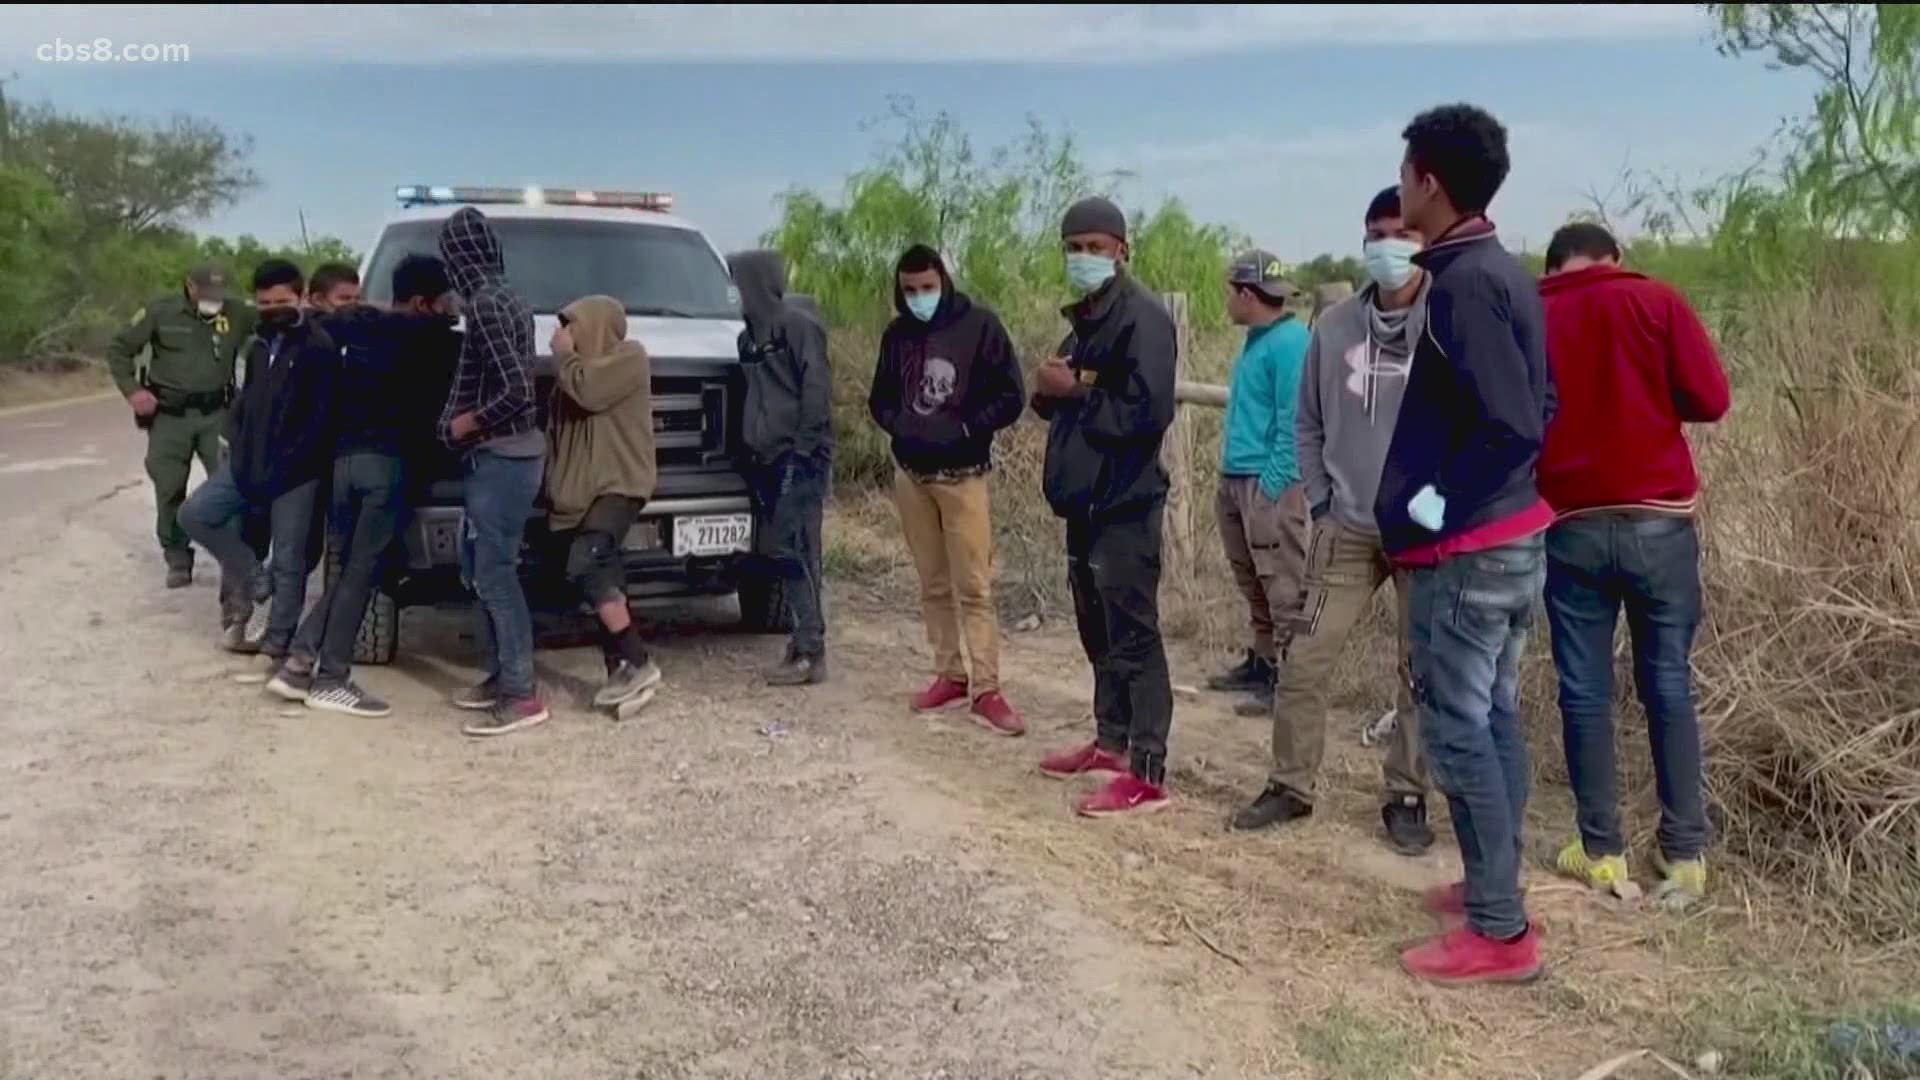 Migrants freed without court notice — sometimes no paperwork 1